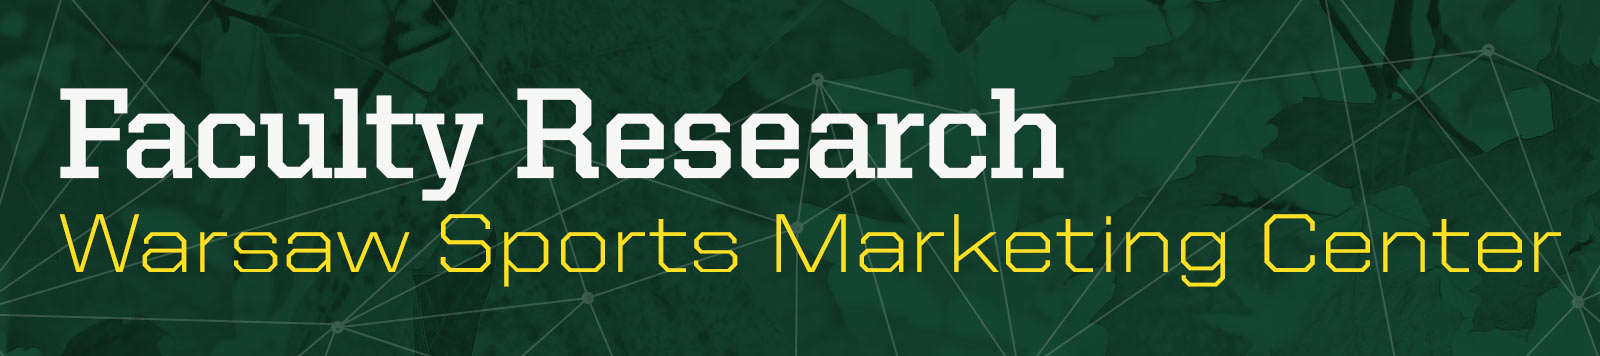 Warsaw Sports Marketing Center Faculty Research